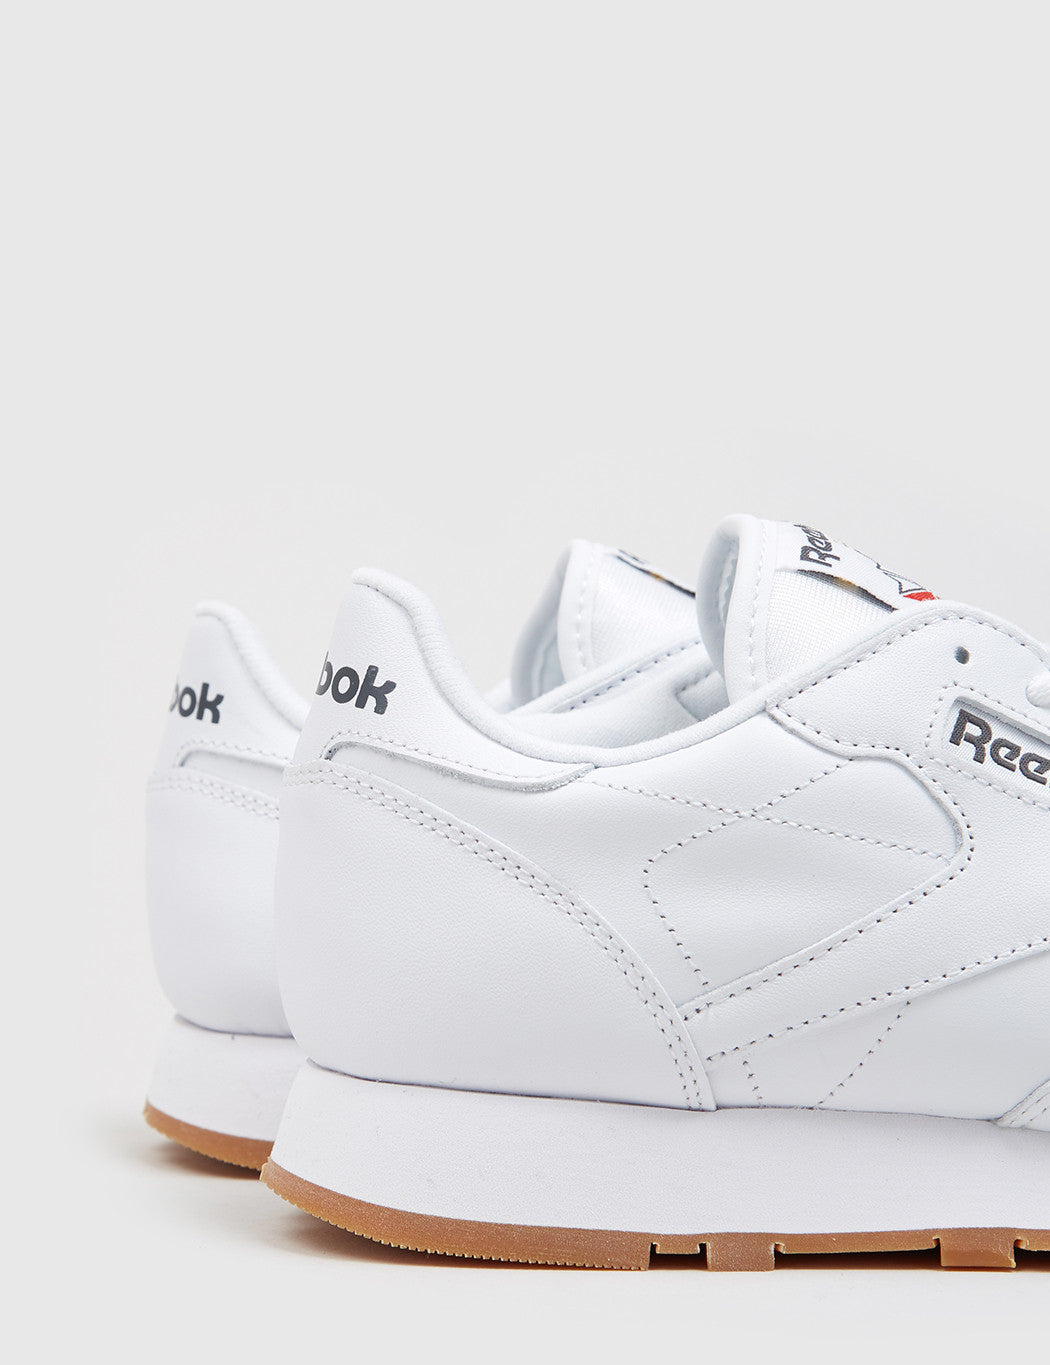 Reebok CL Classic Leather - White/Gum